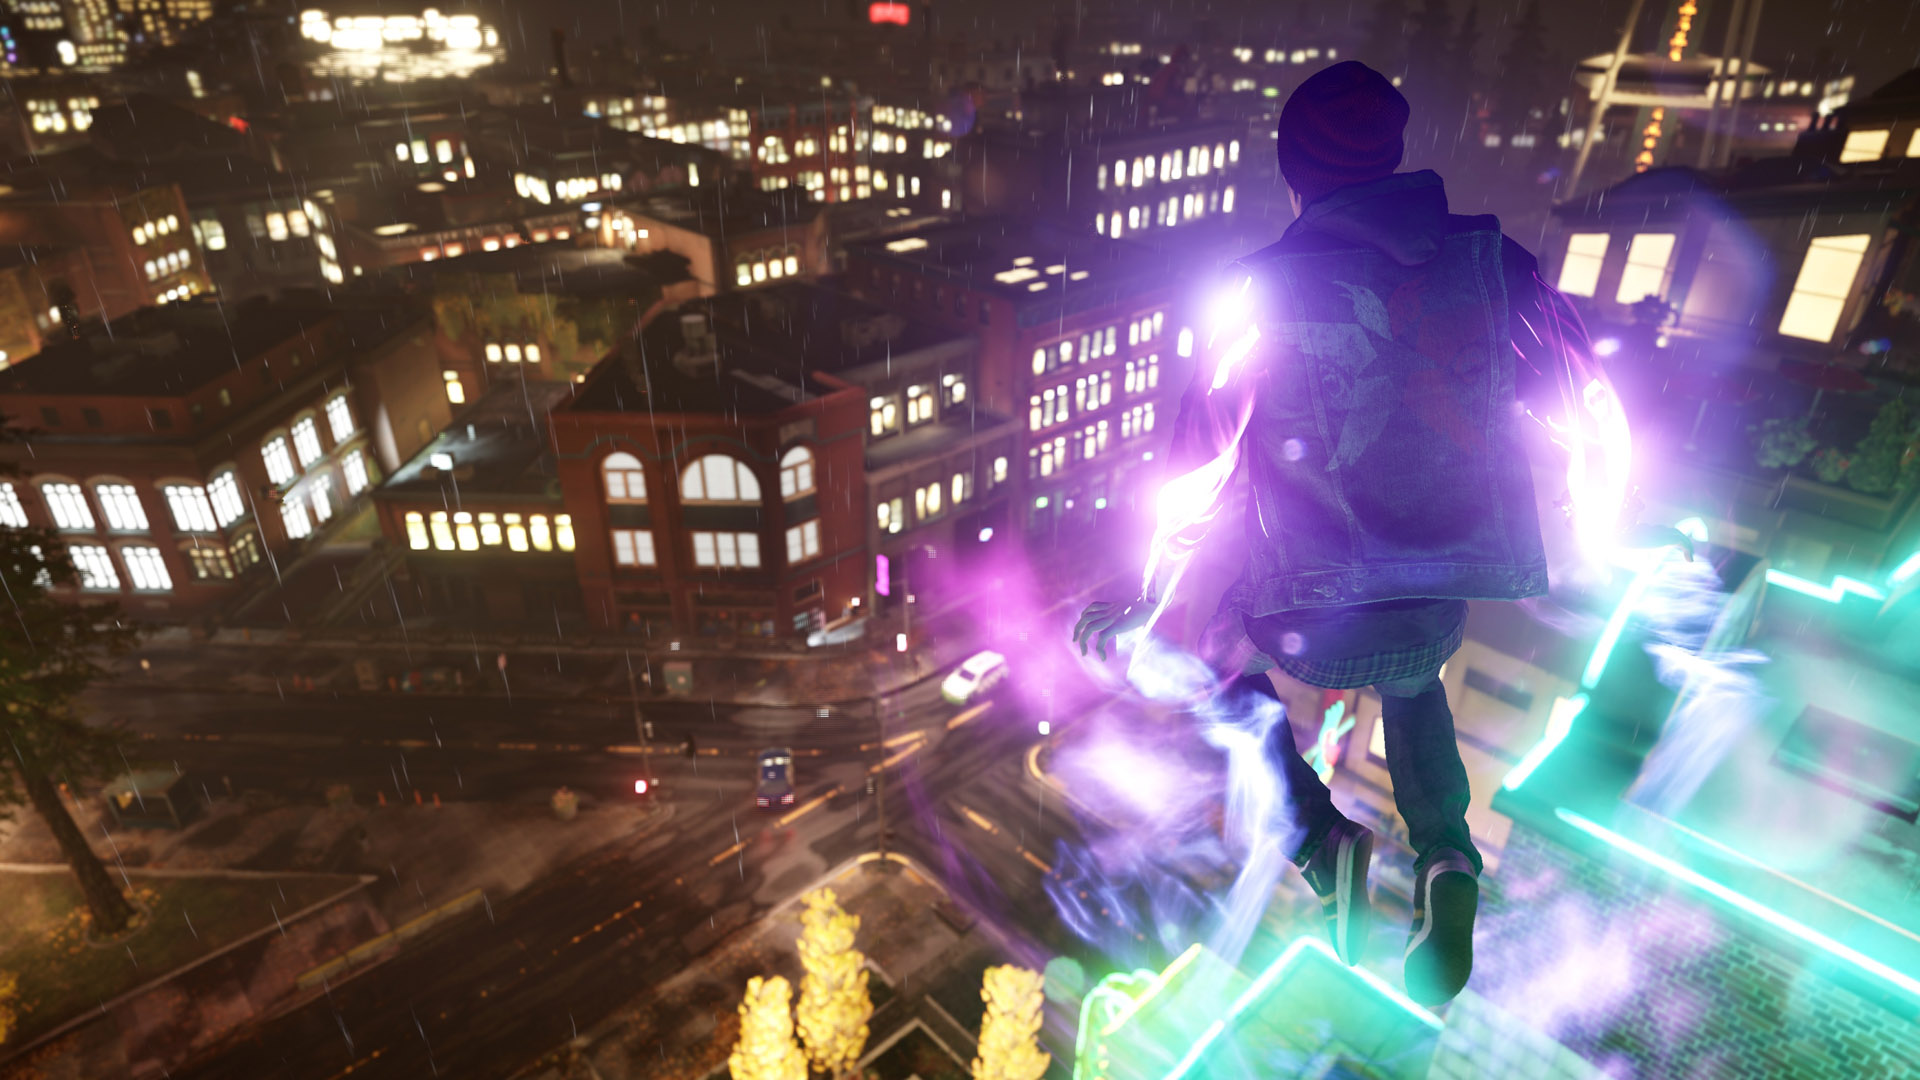 review_off_infamous2 (21)